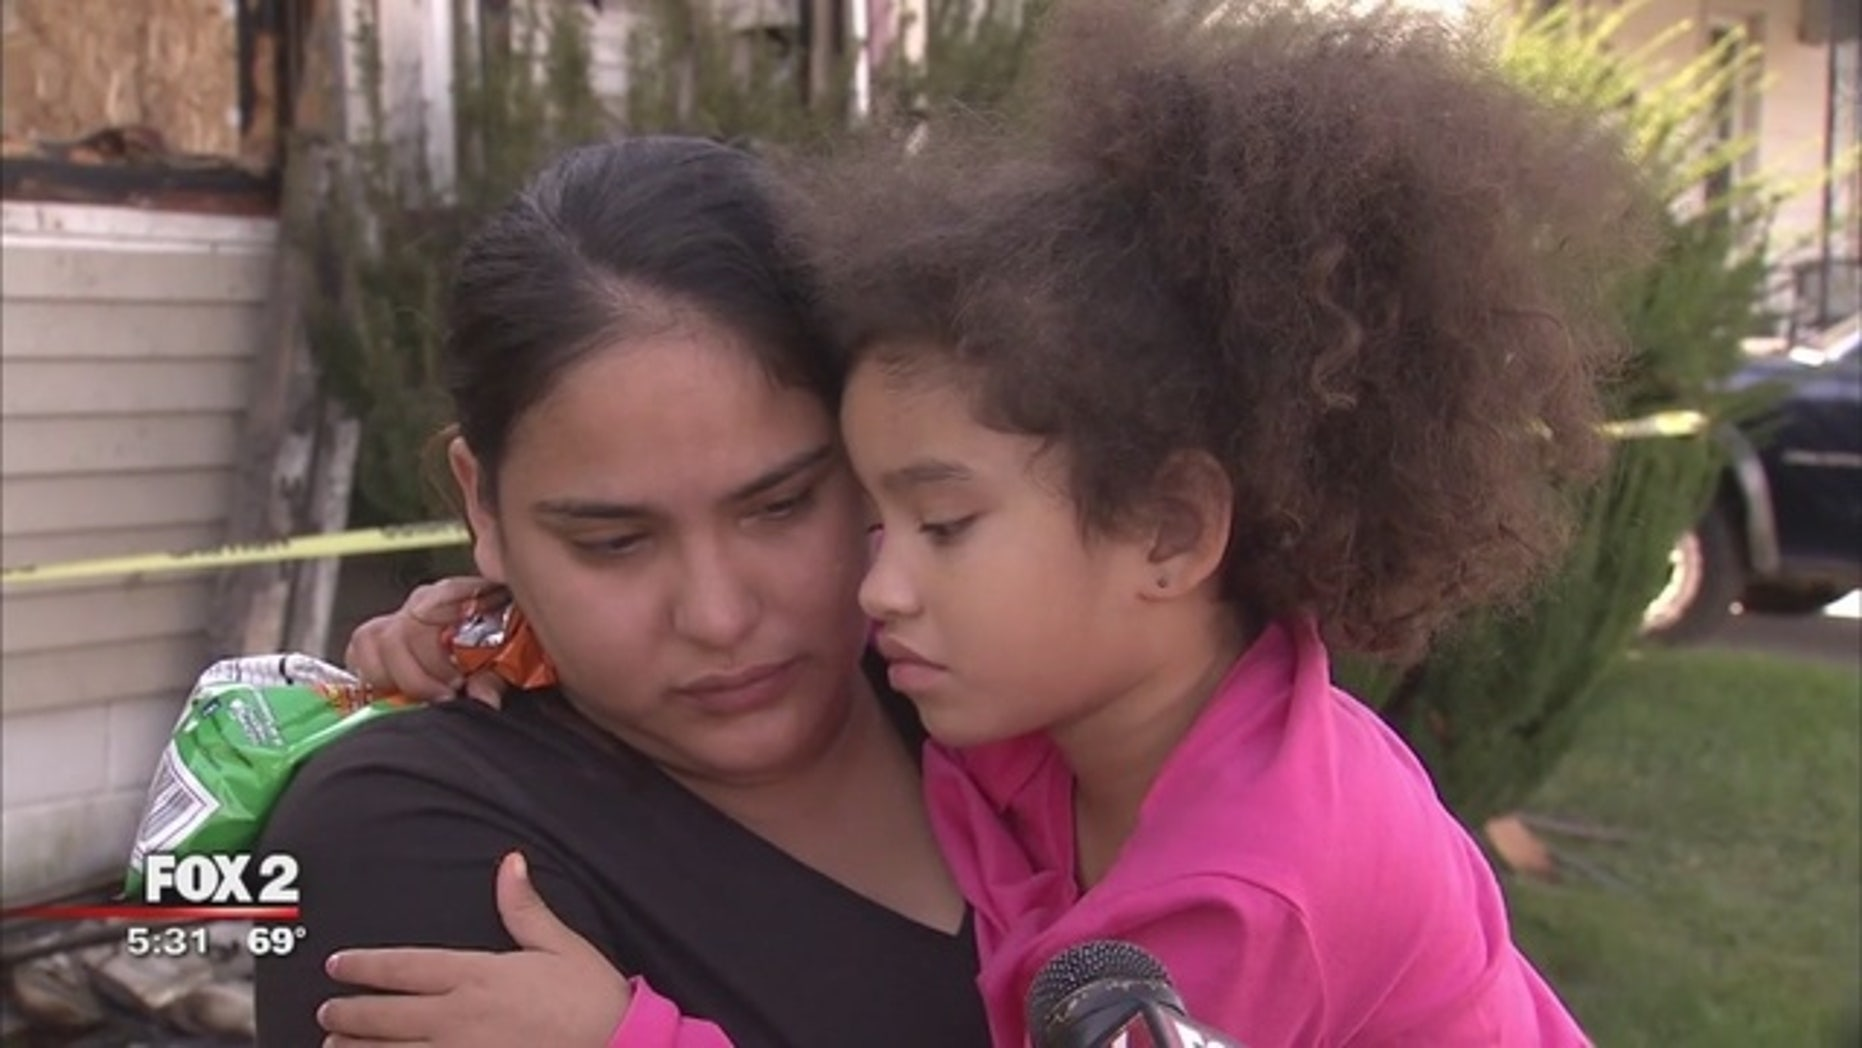 Rosa Conley with her daughter, Jamirah, who saved the family from a fire.